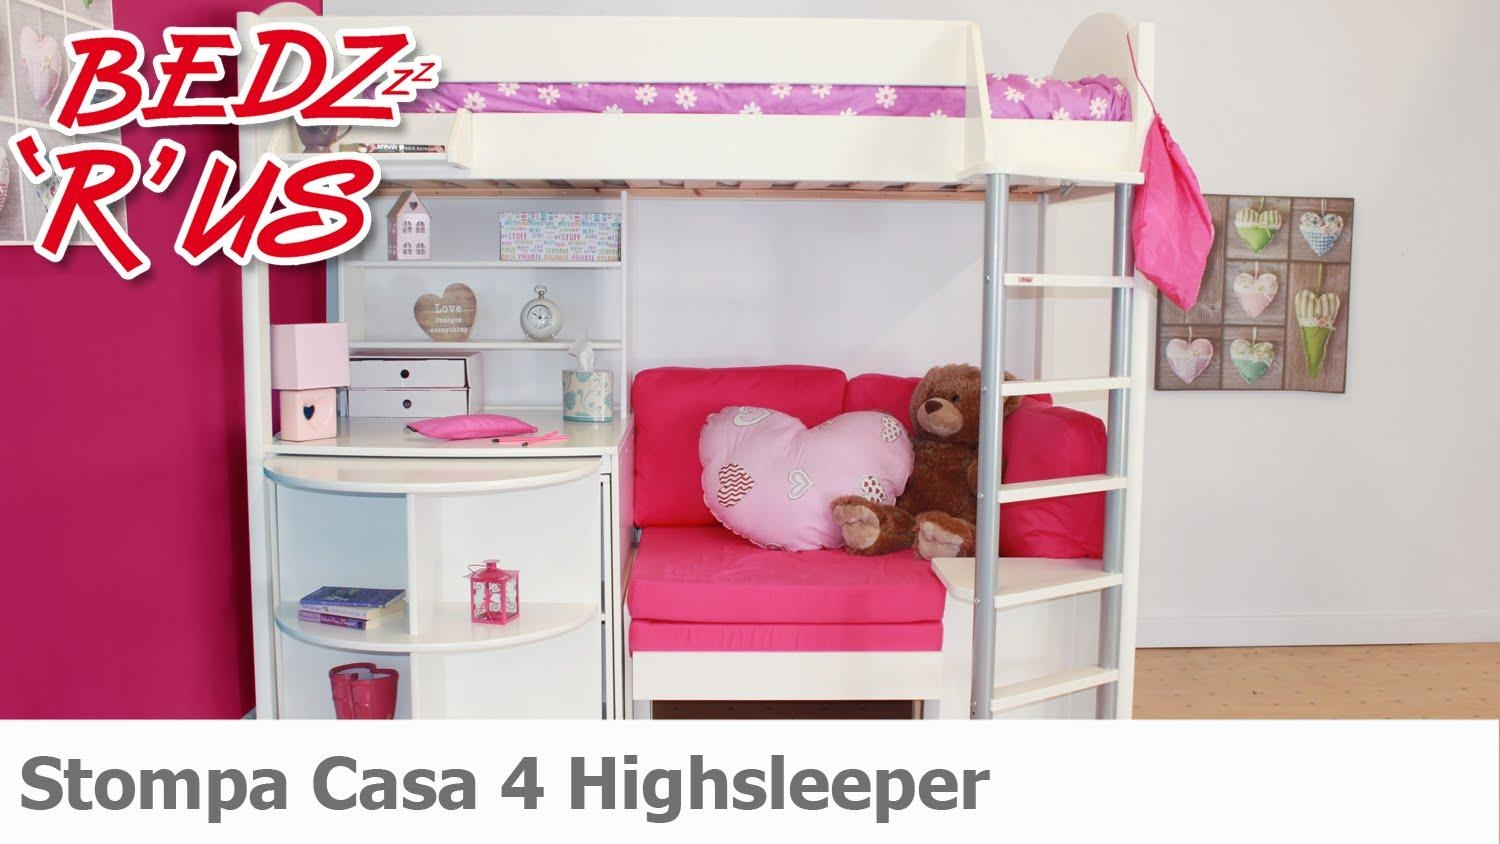 Stompa Casa 4 Highsleeper Bed – Bedzrus – Youtube With Regard To High Sleeper With Desk And Sofa (Image 16 of 20)